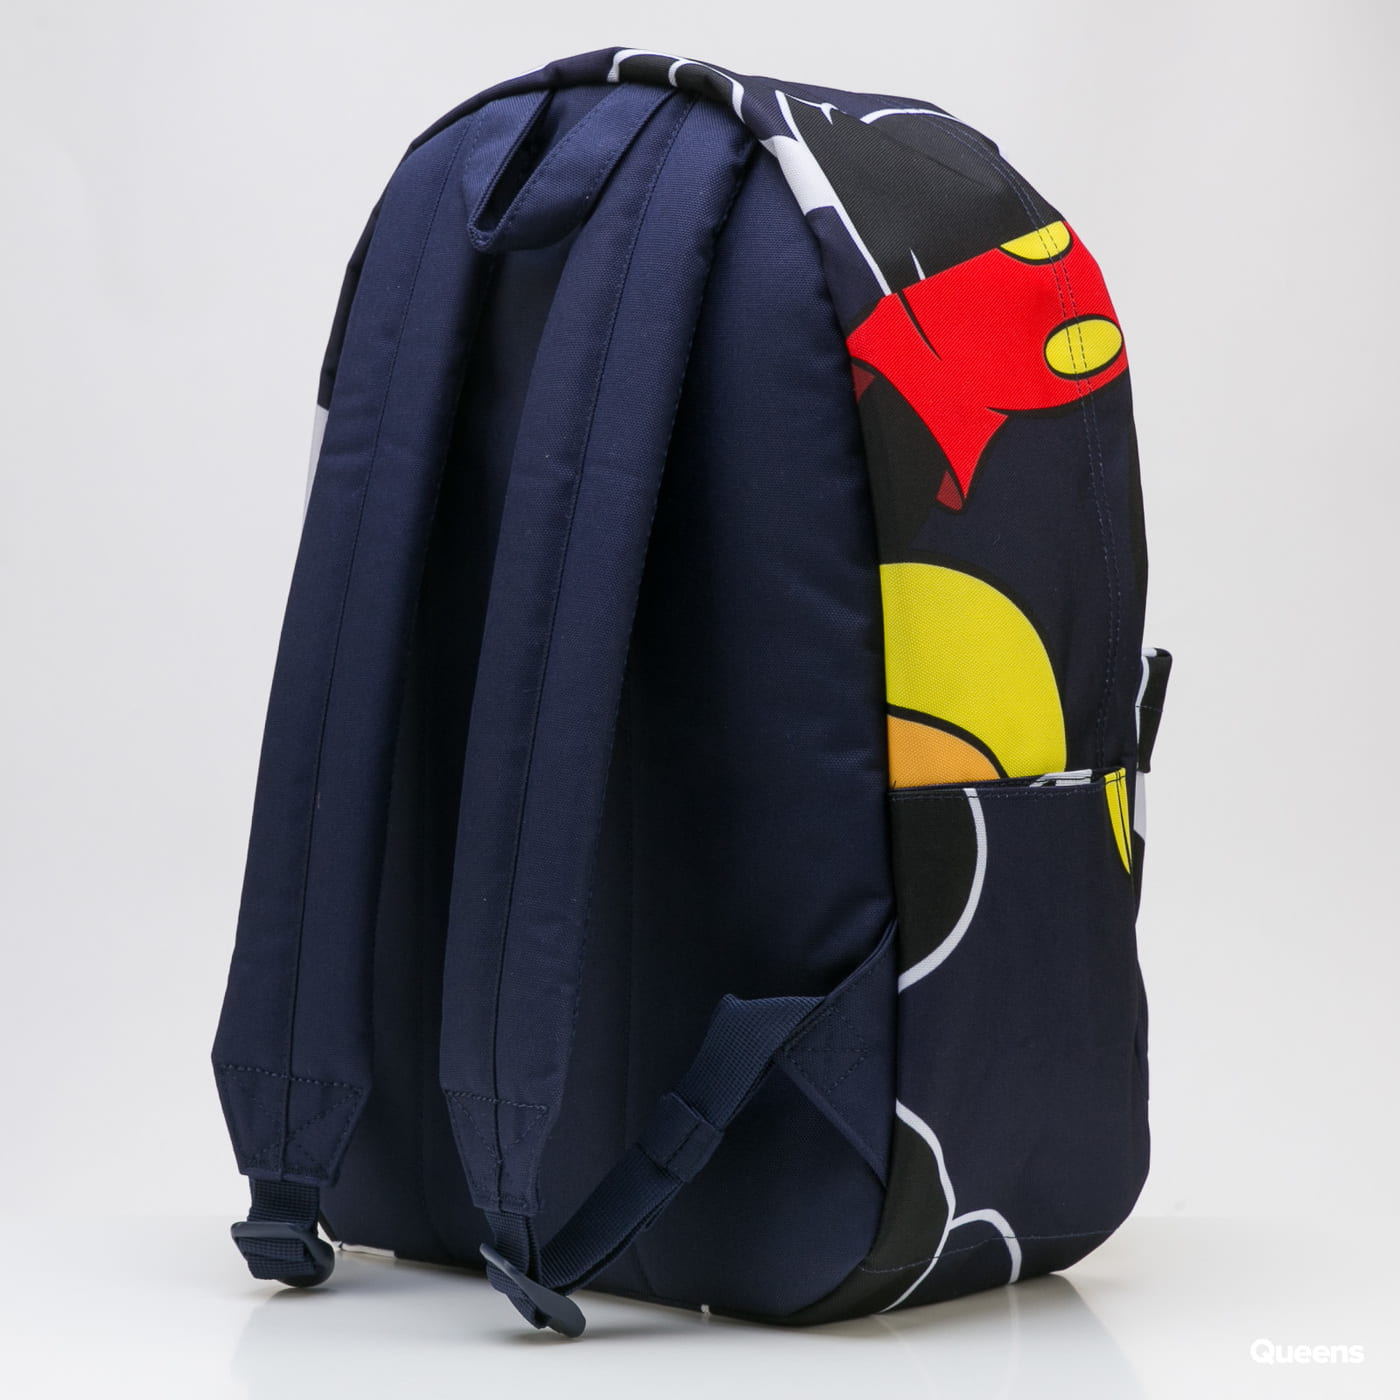 The Herschel Supply CO. Classic XL Mickey Backpack navy / white / black / red / yellow